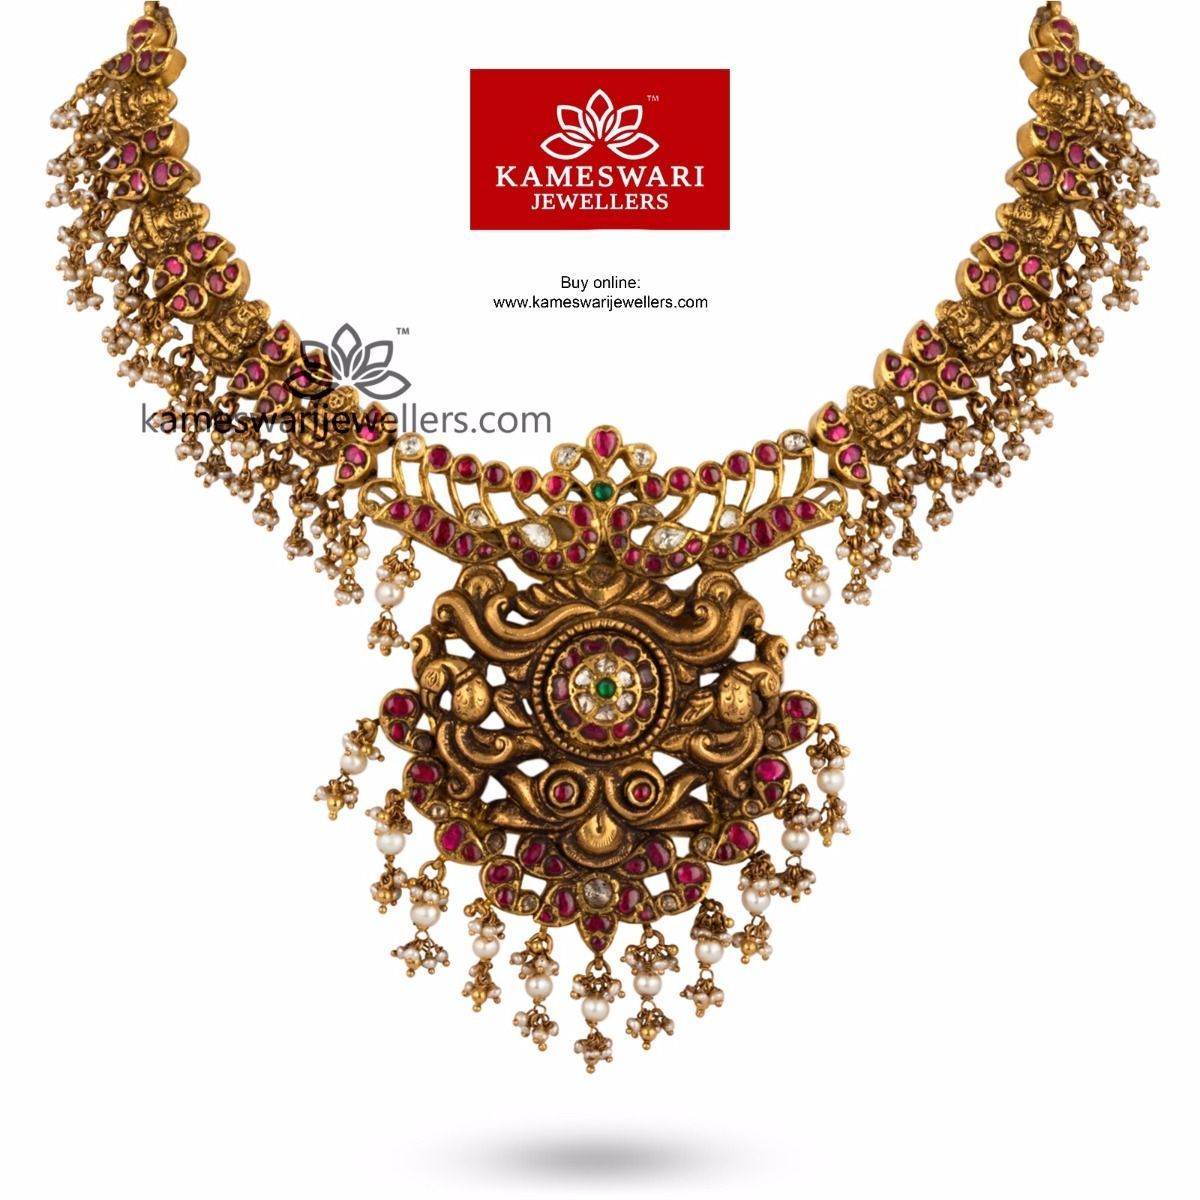 Buy Traditional Necklaces Online At Kameswari Jewellers In India And Usa